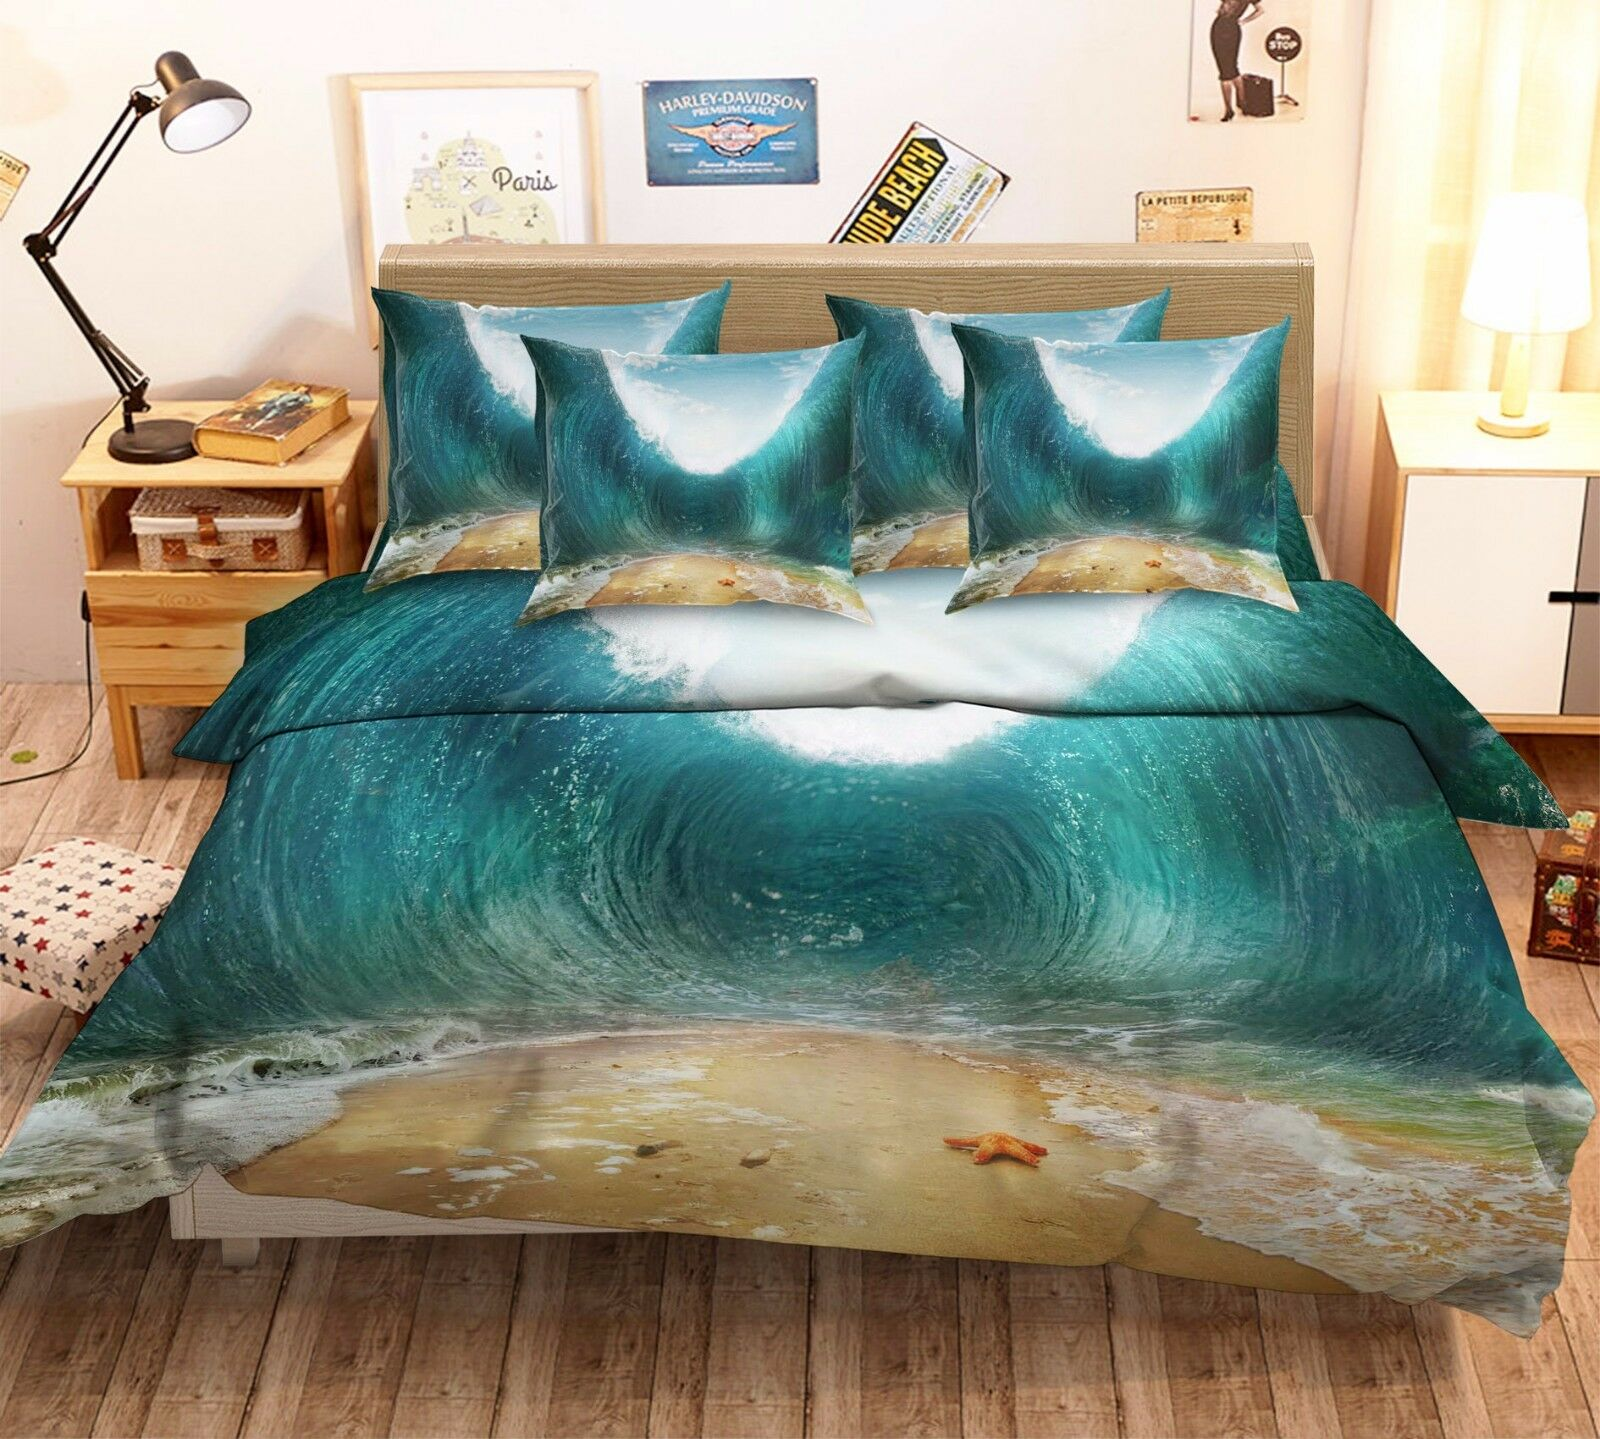 3D Swirl Sea Waves 7 Bed Pillowcases Quilt Duvet Cover Set Single Queen AU Lemon